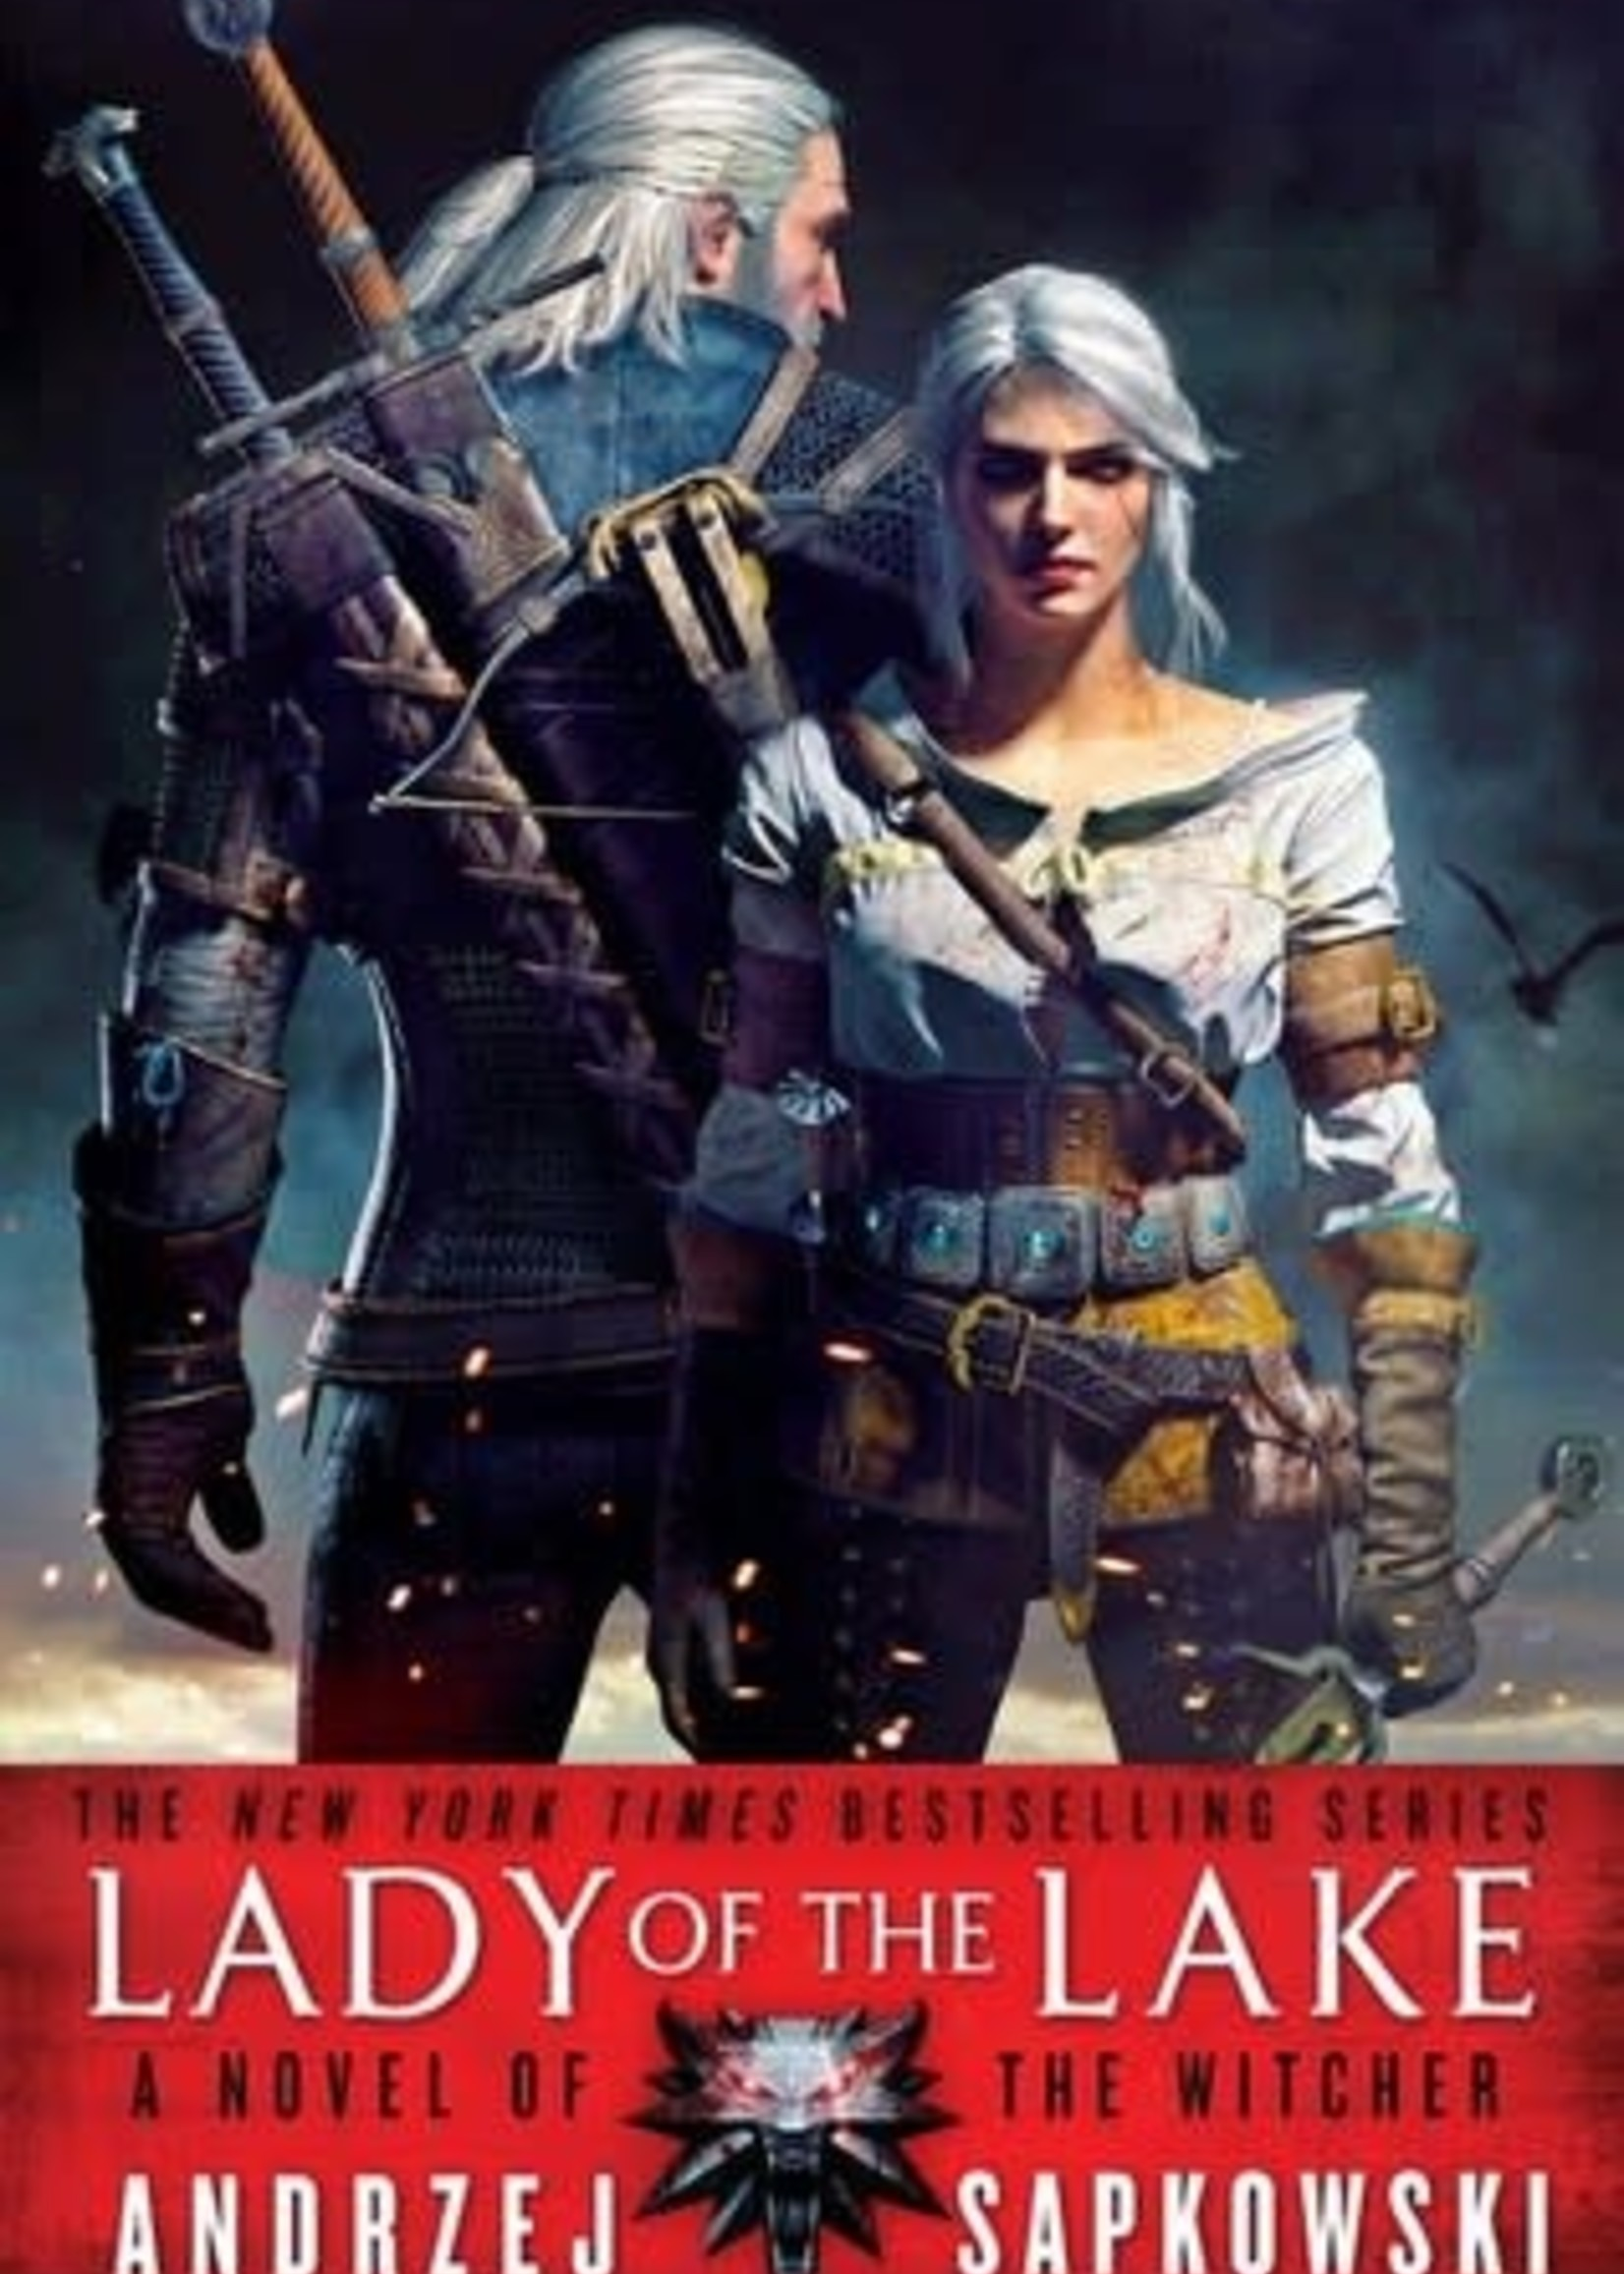 The Lady of the Lake by Andrzej Sapowski